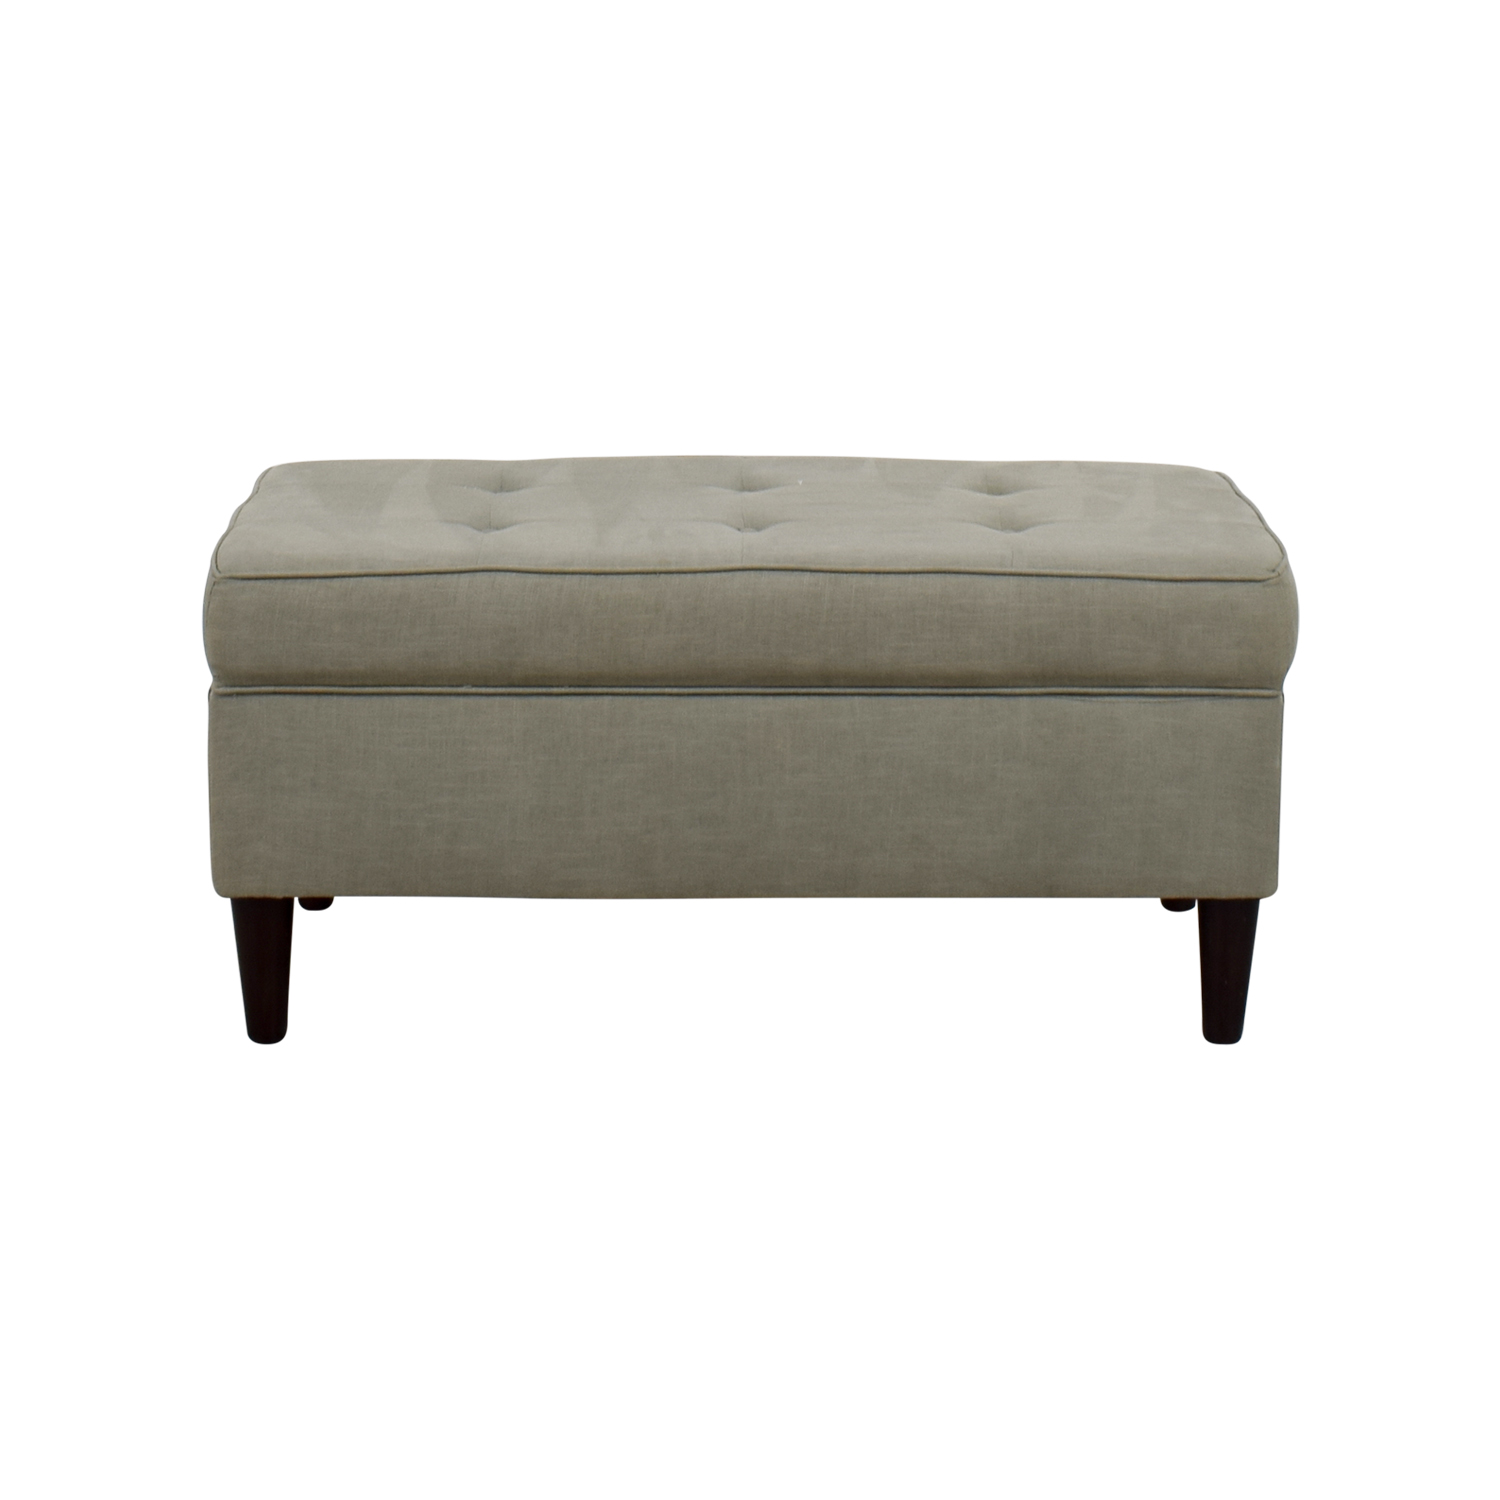 Ottomans used ottomans for sale Gray storage bench